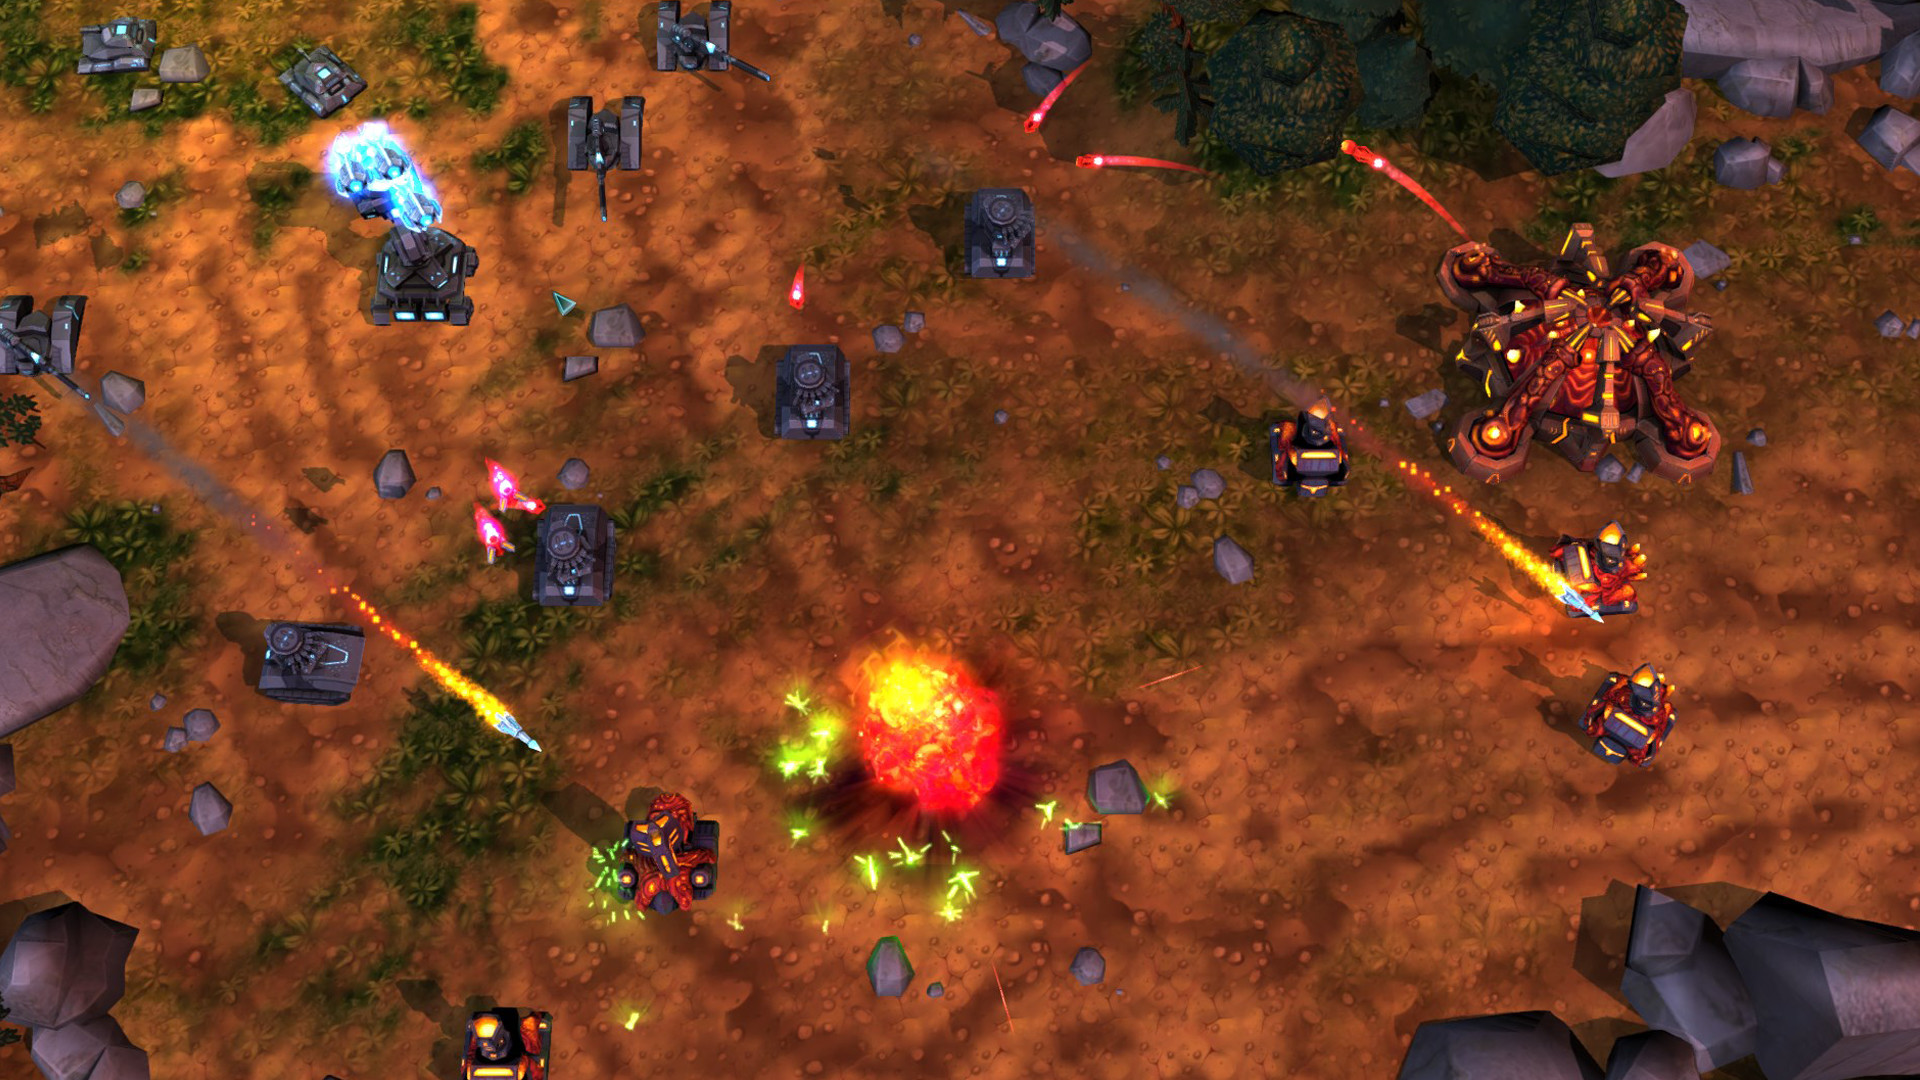 Tanks vs Aliens Screenshot 2